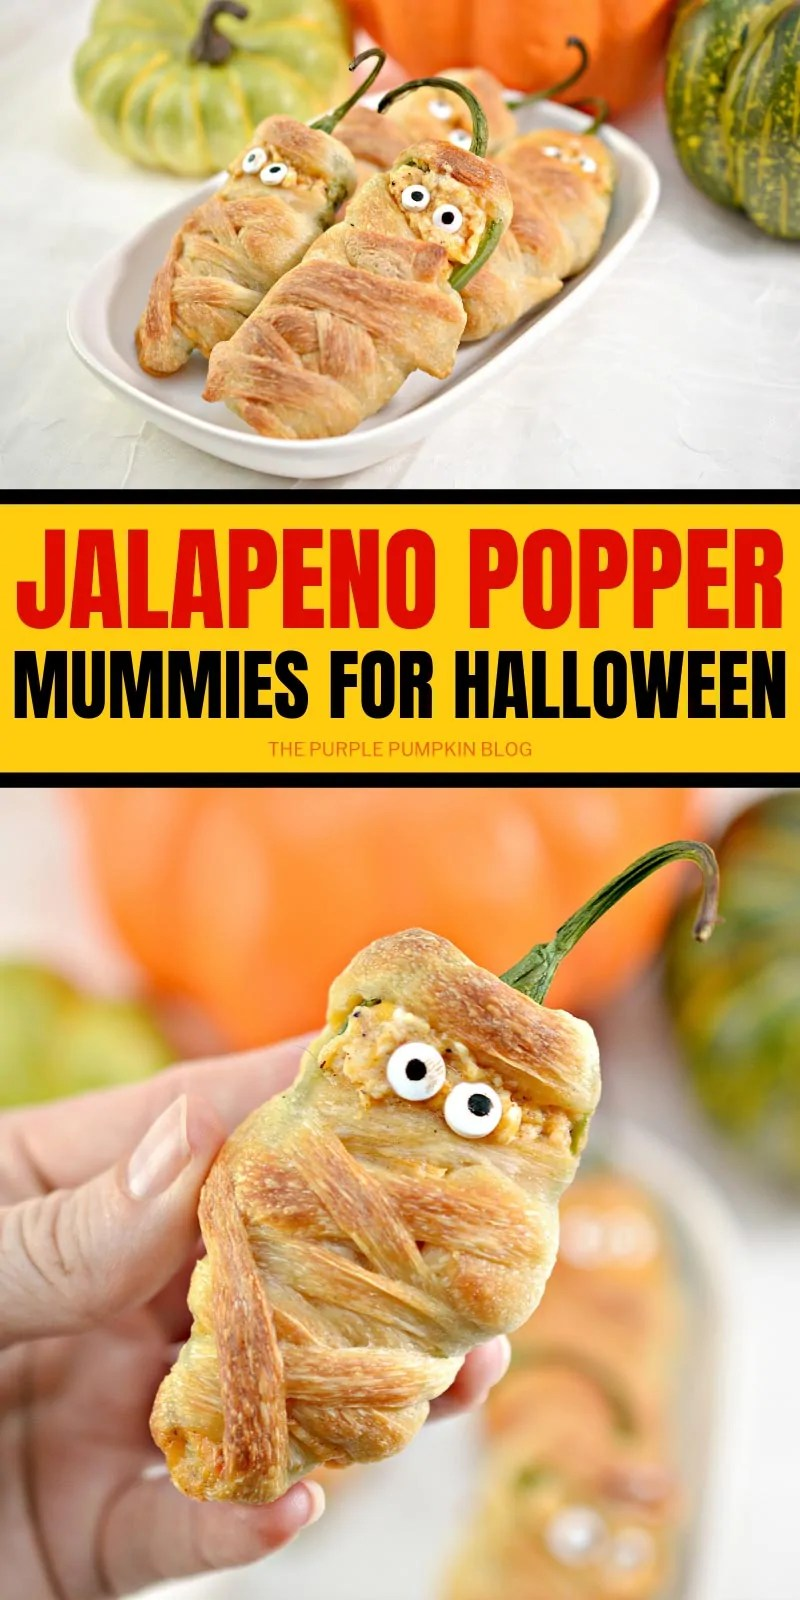 Jalapeno Popper Mummies for Halloween